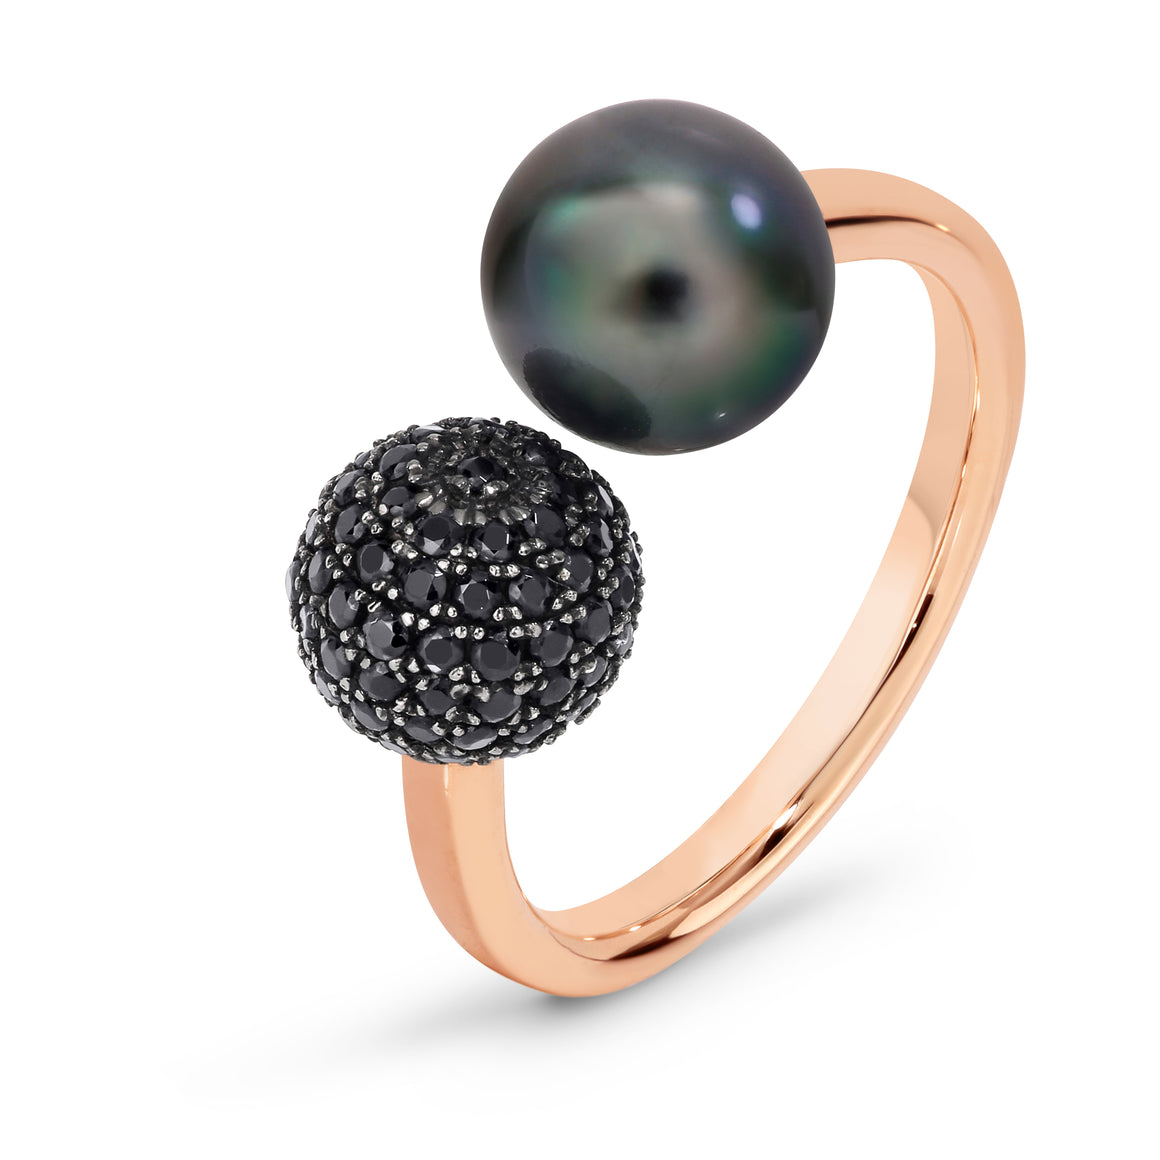 Tahitian Pearl & Black Diamond 'Emilie' Ring - Gemma Stone Jewellery